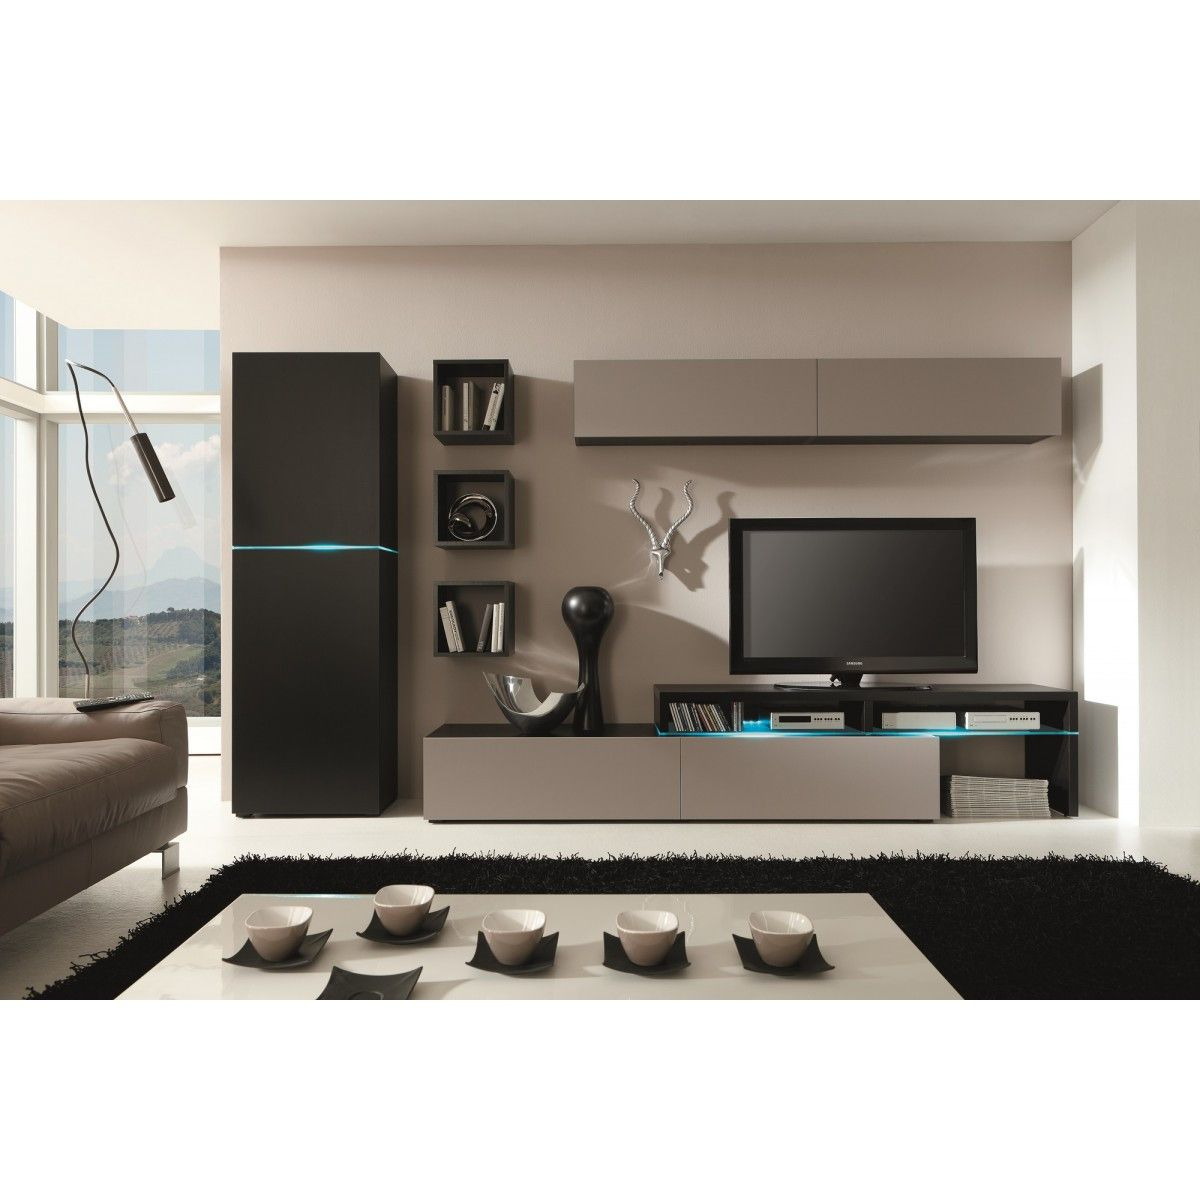 material mdf melamine tempered glass led lighting the amsterdam wall unit is the trifecta of. Black Bedroom Furniture Sets. Home Design Ideas